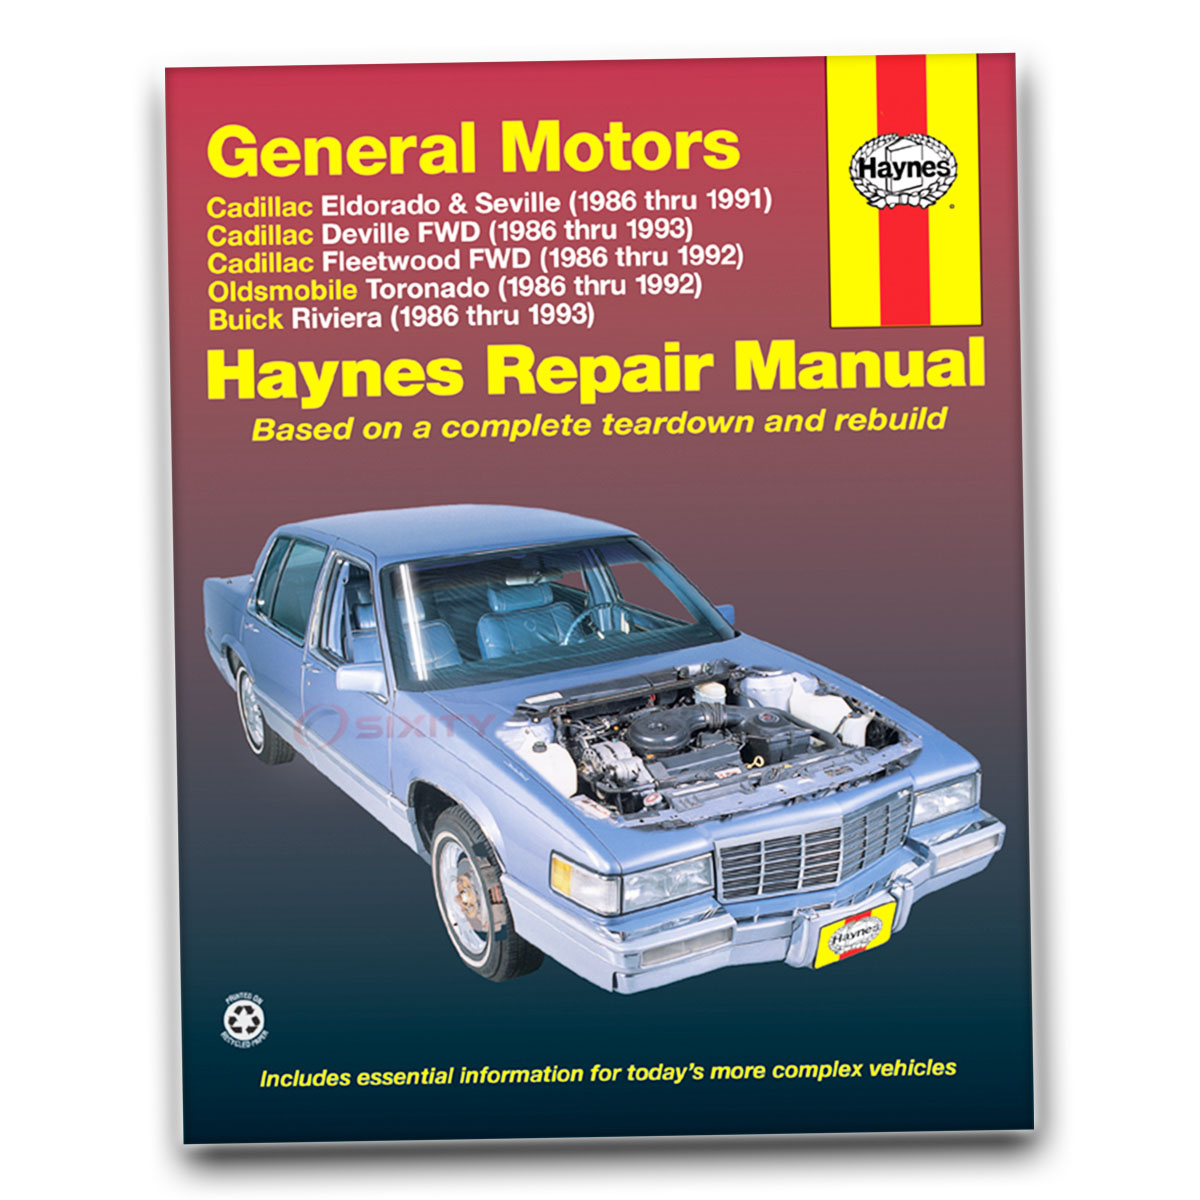 Haynes Repair Manual for Cadillac Fleetwood Brougham d'Elegance 75 60 im